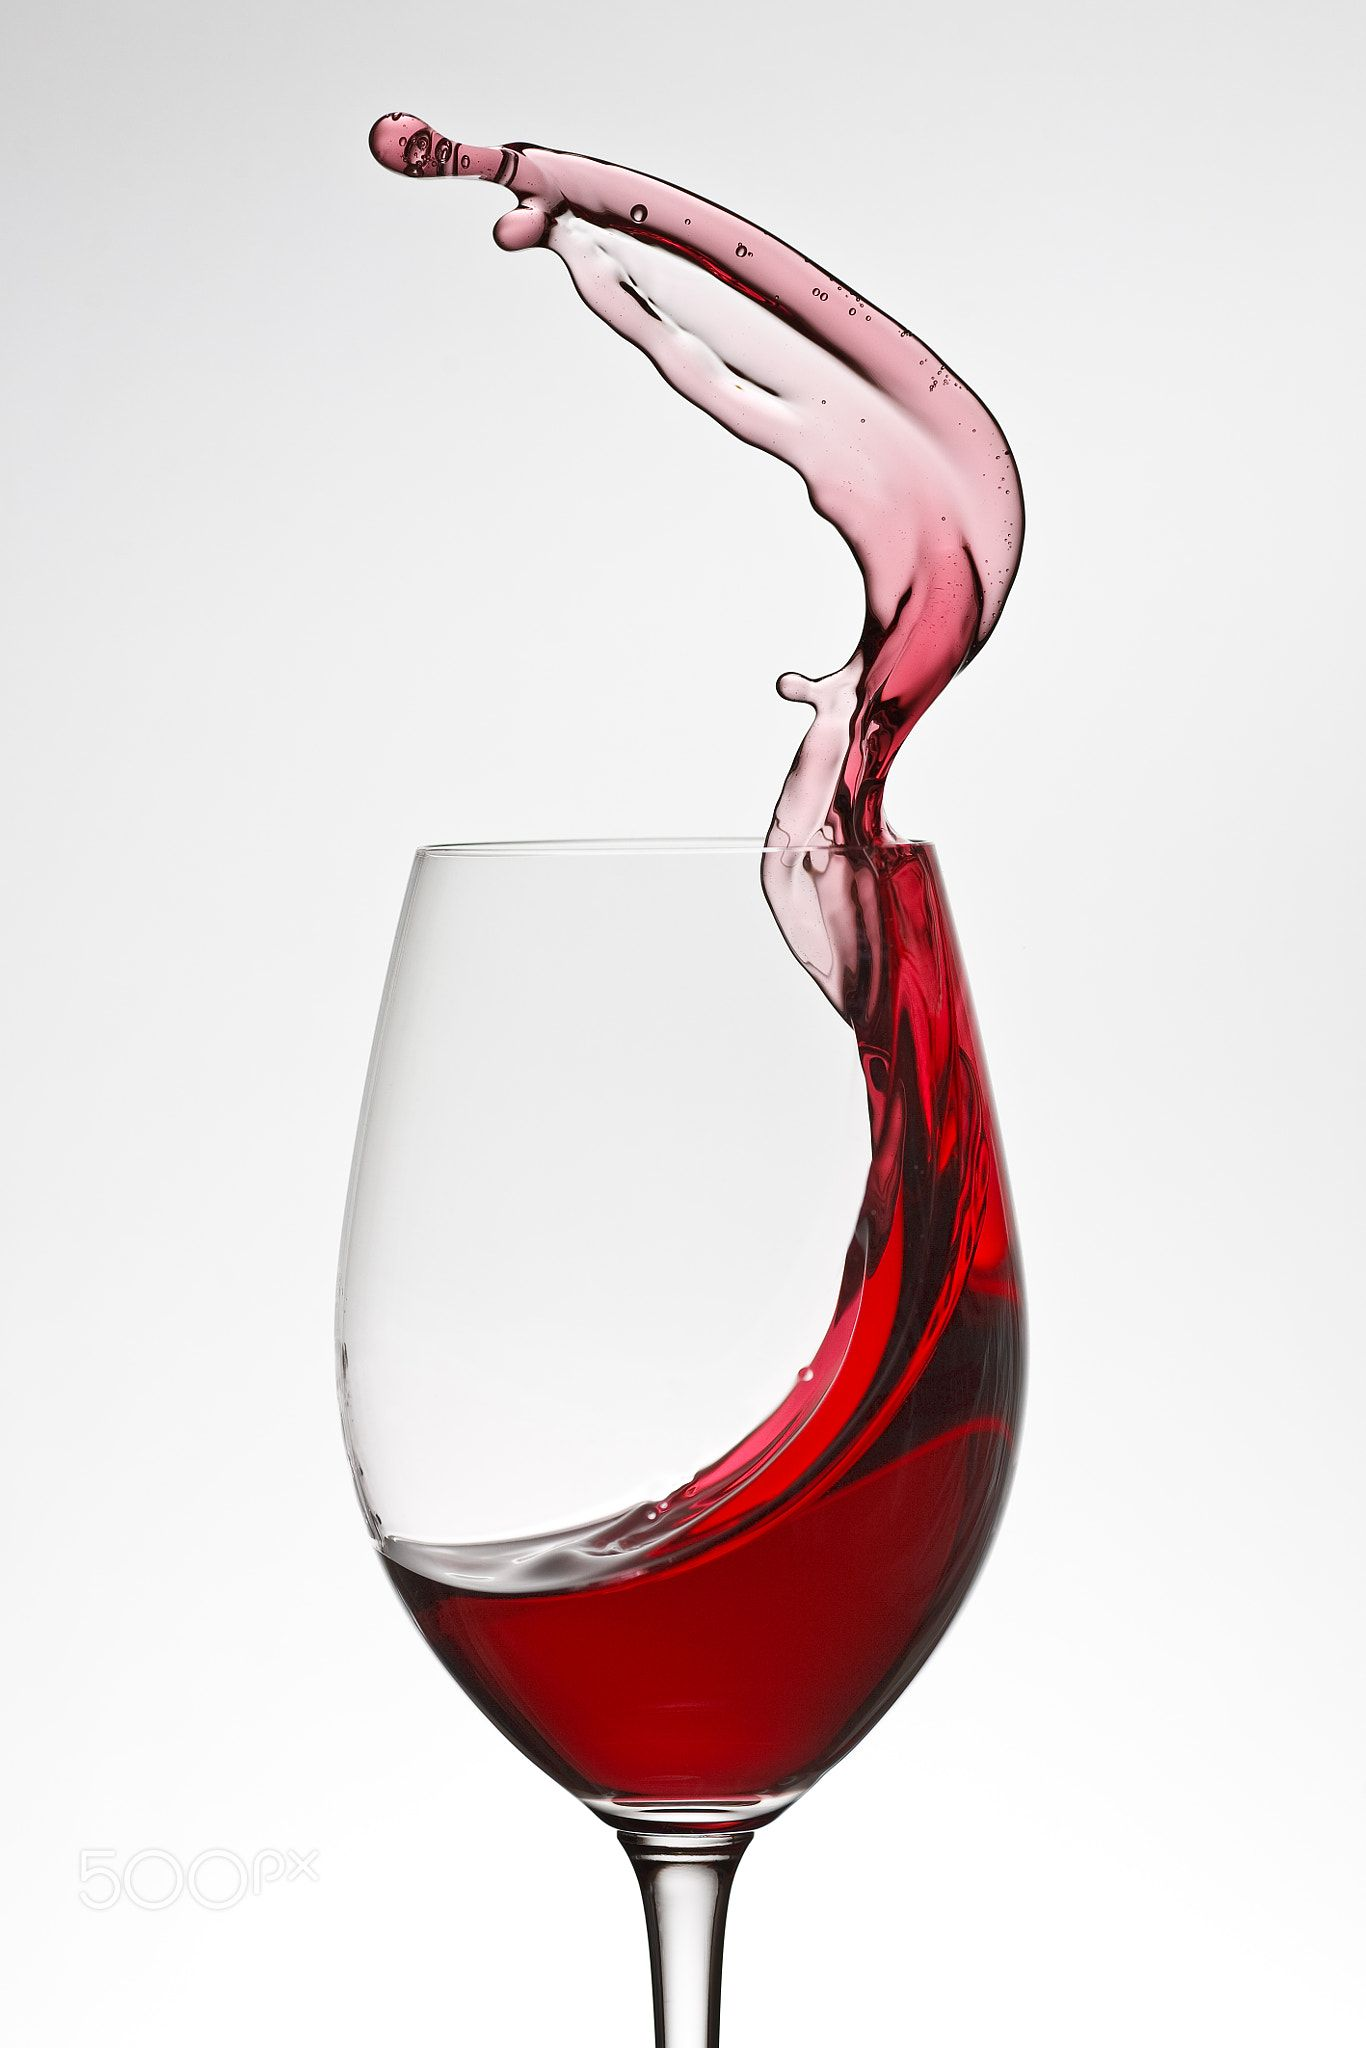 Shiraz Escapism This Image Of Shiraz Jumping Out Of A Glass Was Not Created Using Photoshop Trickery It Is Wine Photography Wine Art Wine Glass Photography